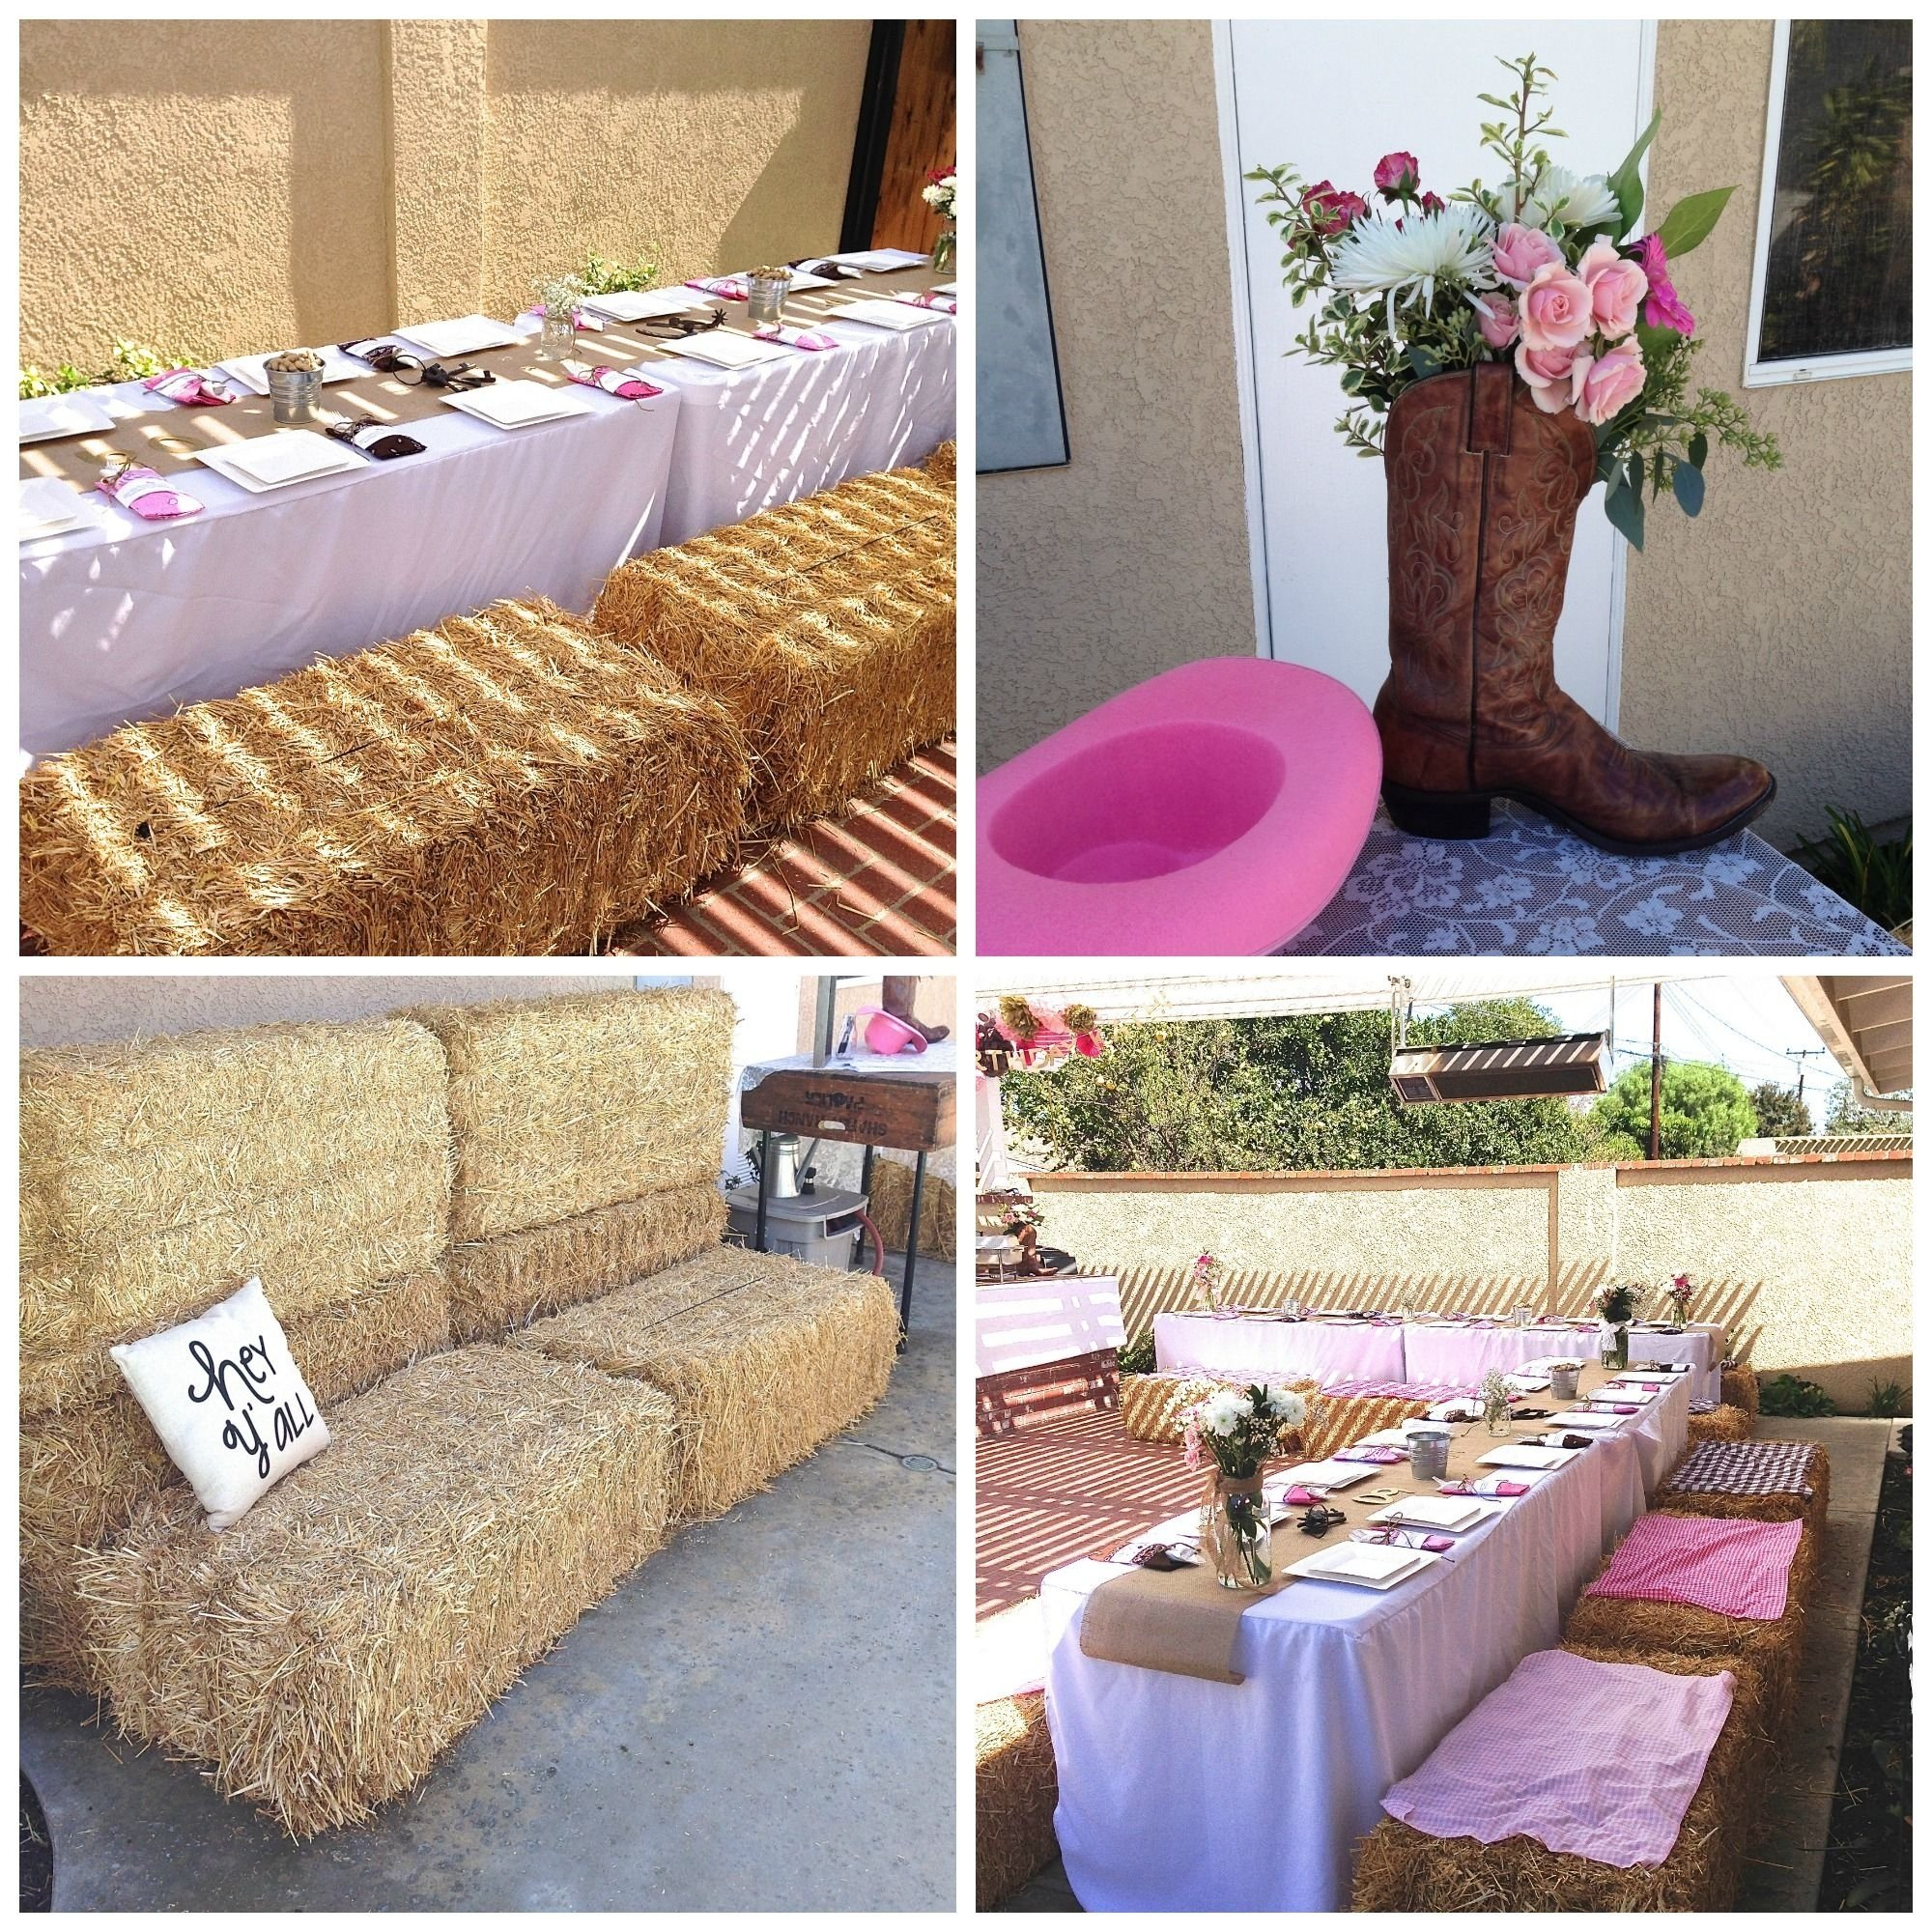 10 Attractive Western Party Ideas For Adults western birthday adult western party hay bales flower boot 2020